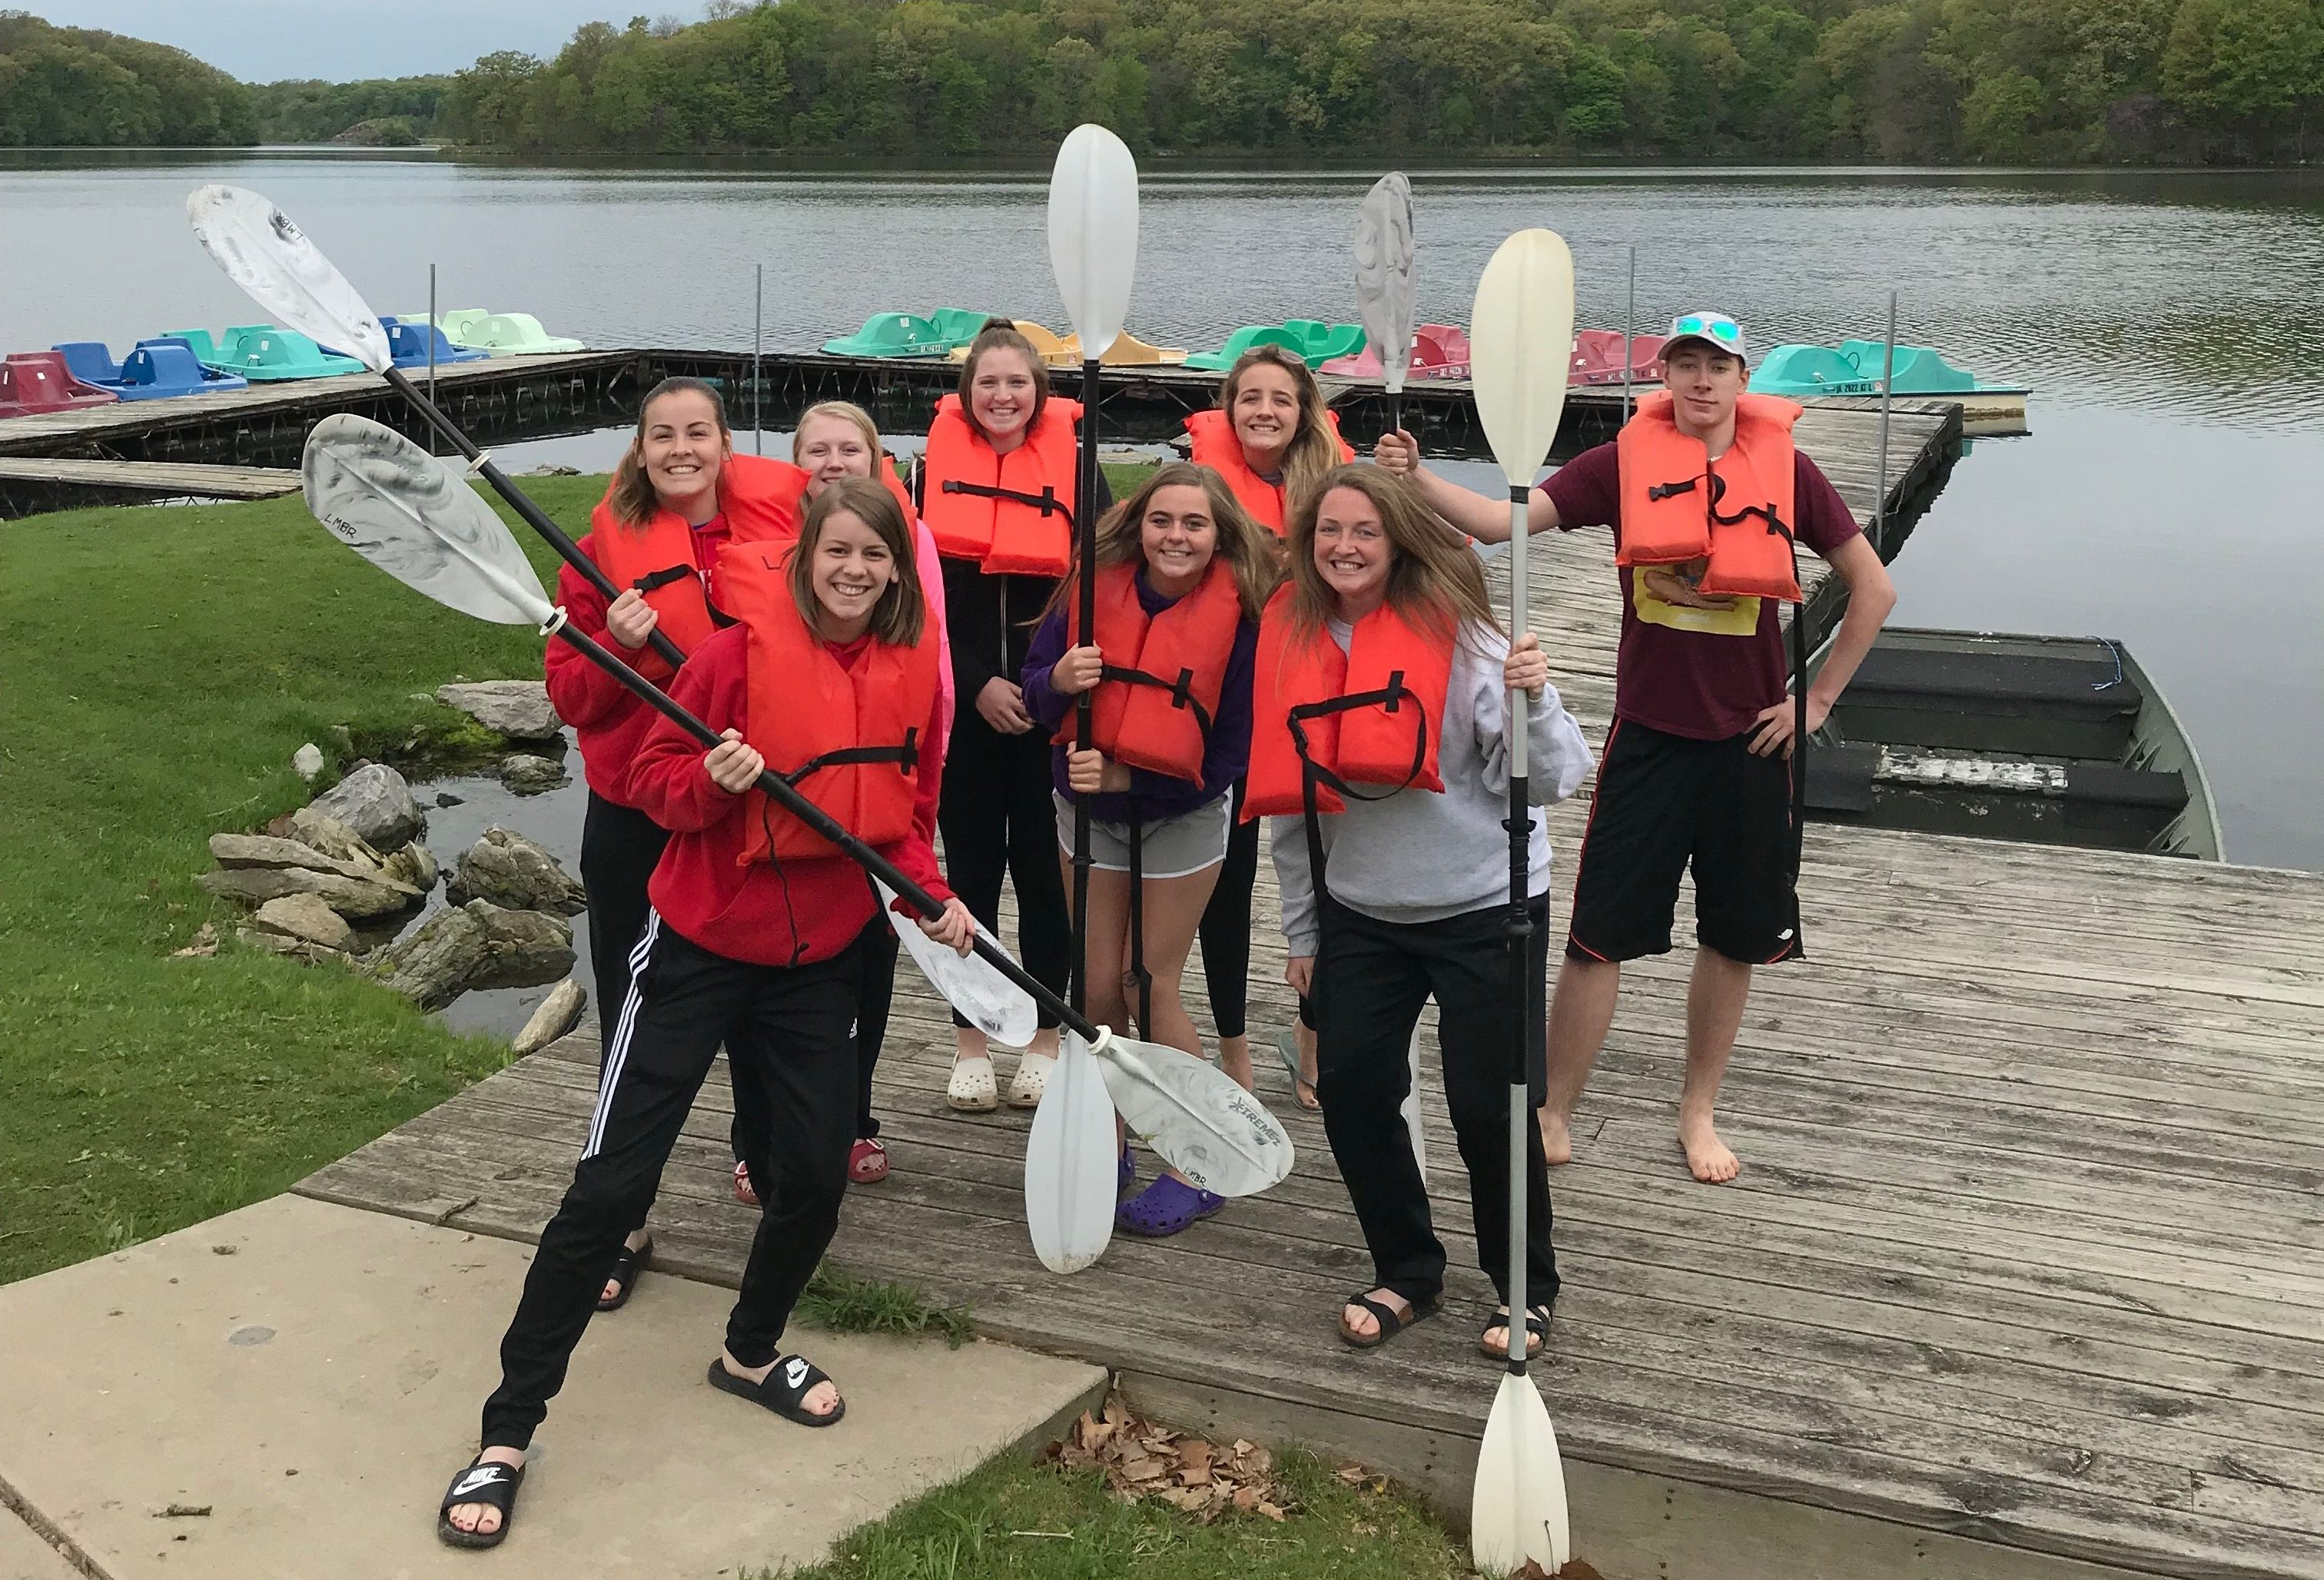 group of students with ores and life jackets